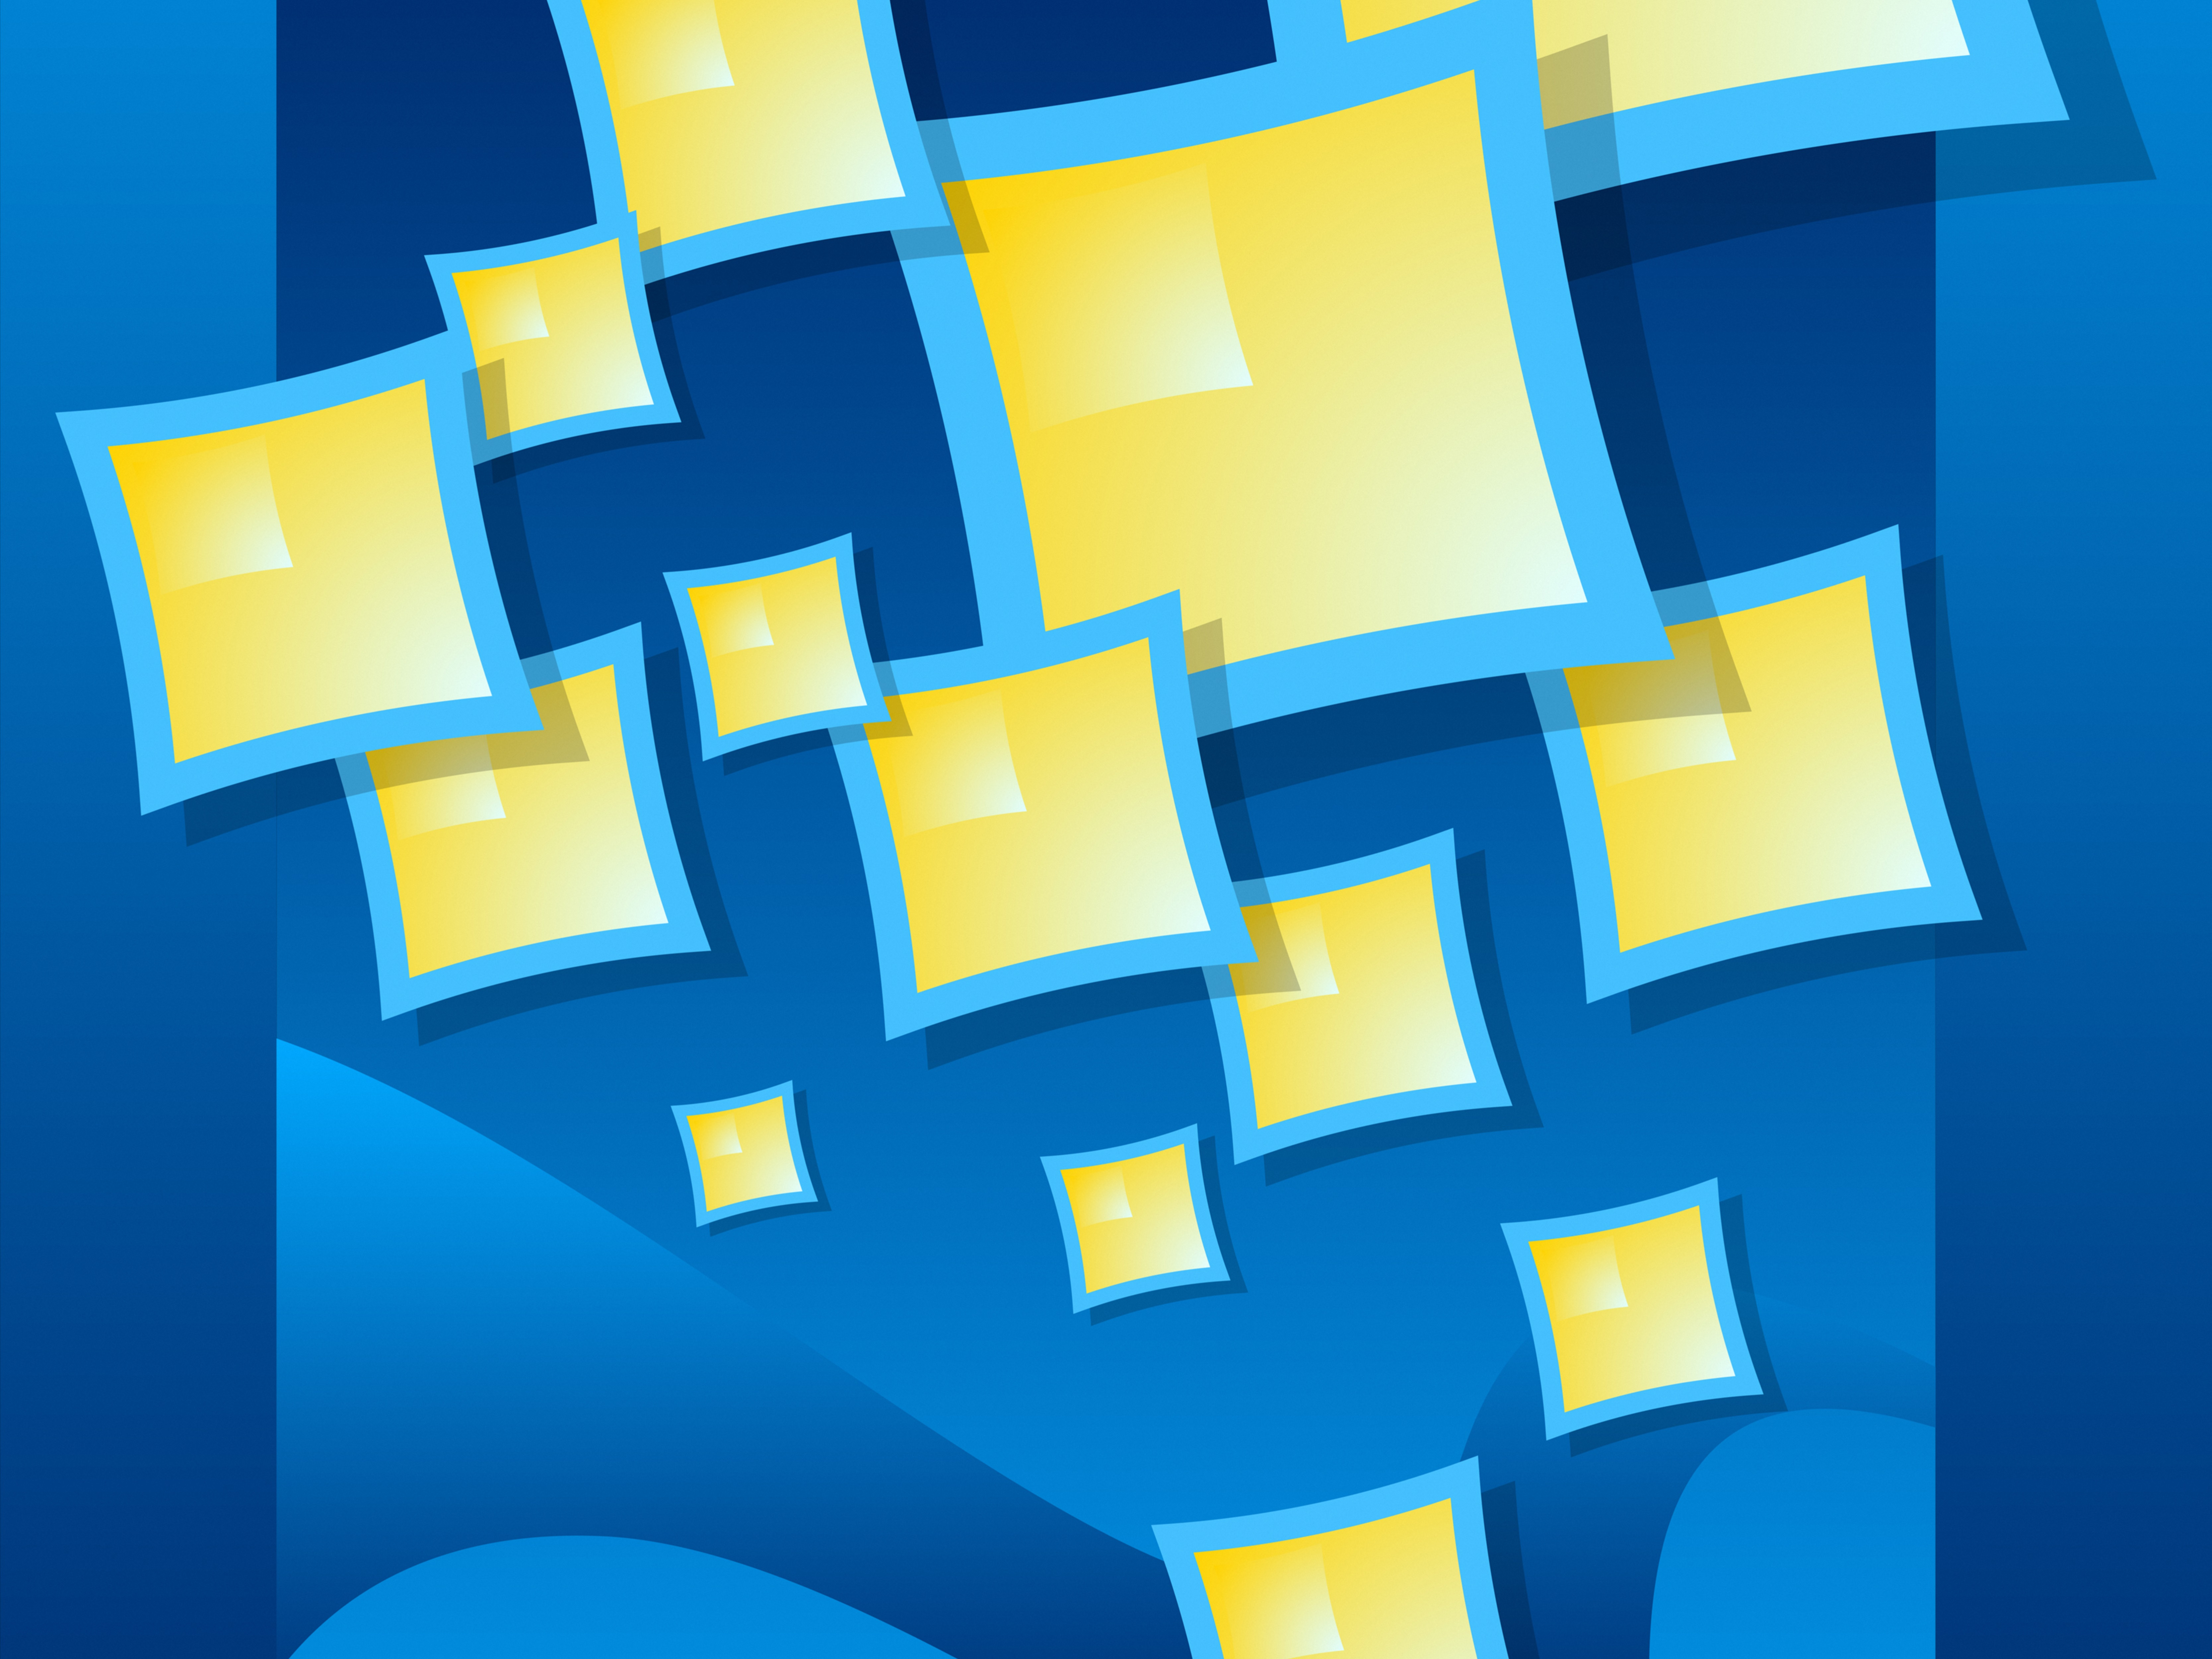 Icon illustrating European Union in abstract van Gogh style  © Daemys  / Shutterstock.com